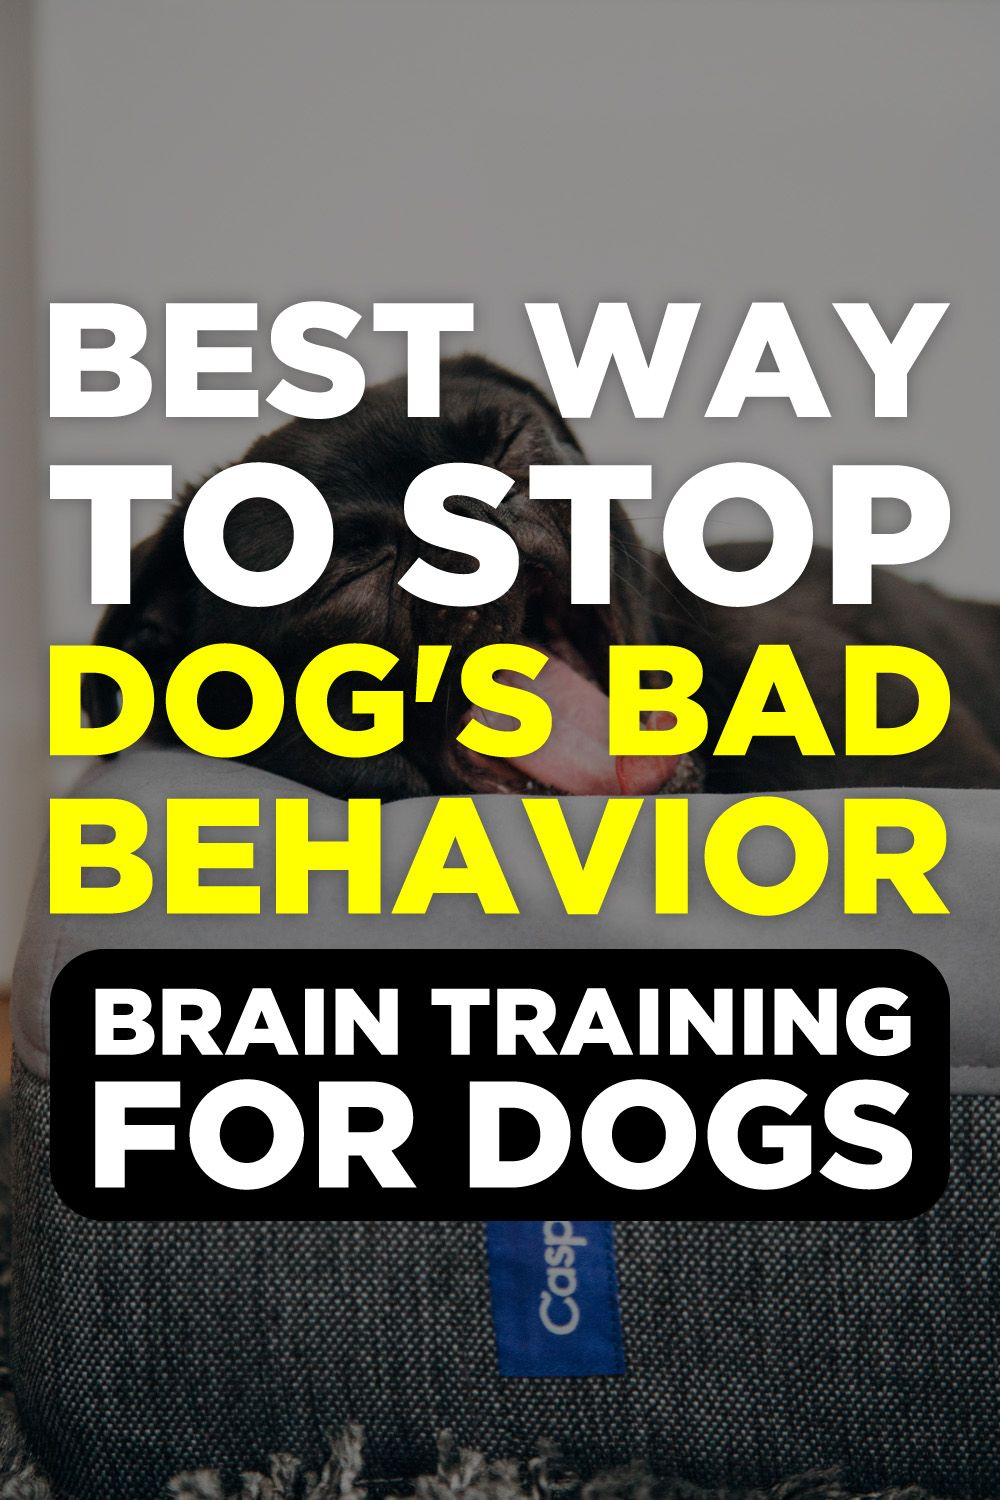 Brain training for dogs review puppy training puppy